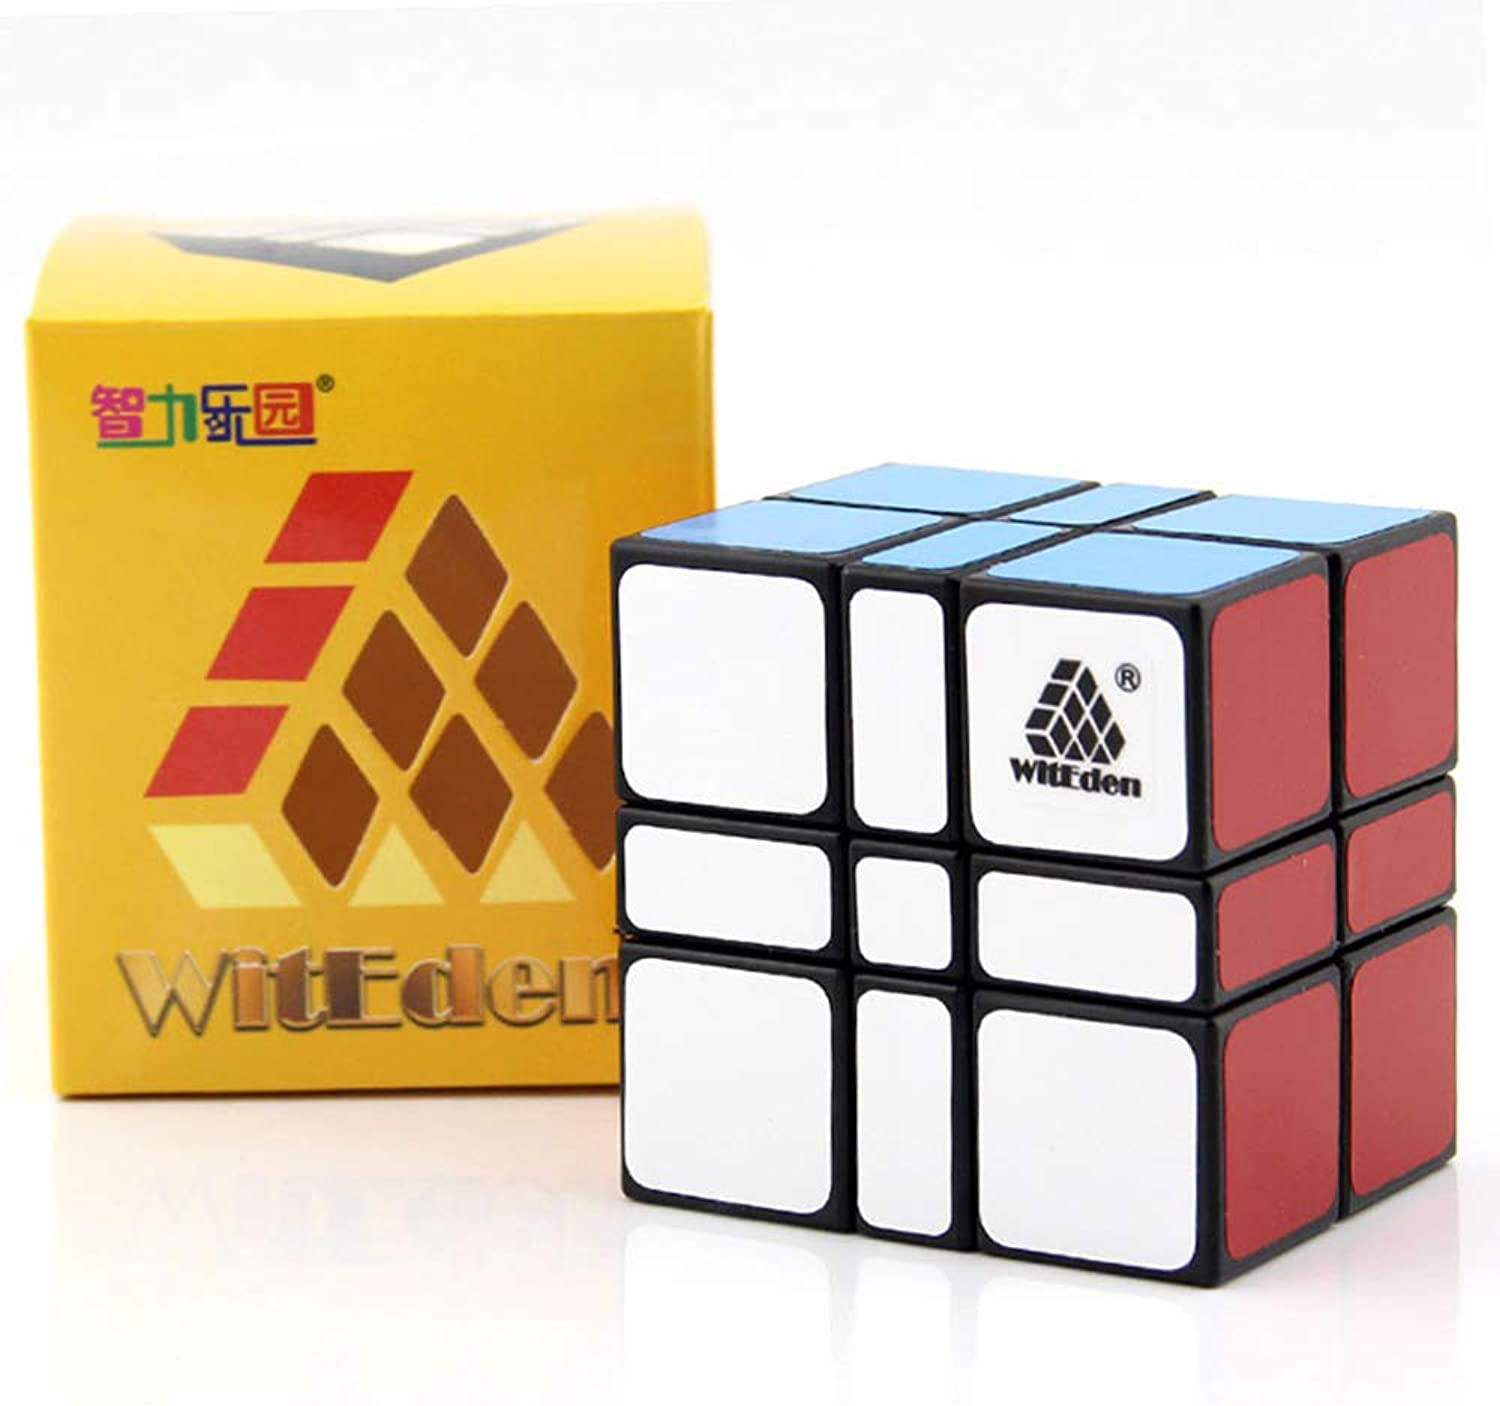 Zauberwürfel Uneven 3x3x2 Solid Cube Professional Speed Puzzle 332 Rubik es Cube Educational Toy B07NV5FGNP Toy Story     | Schöne Farbe